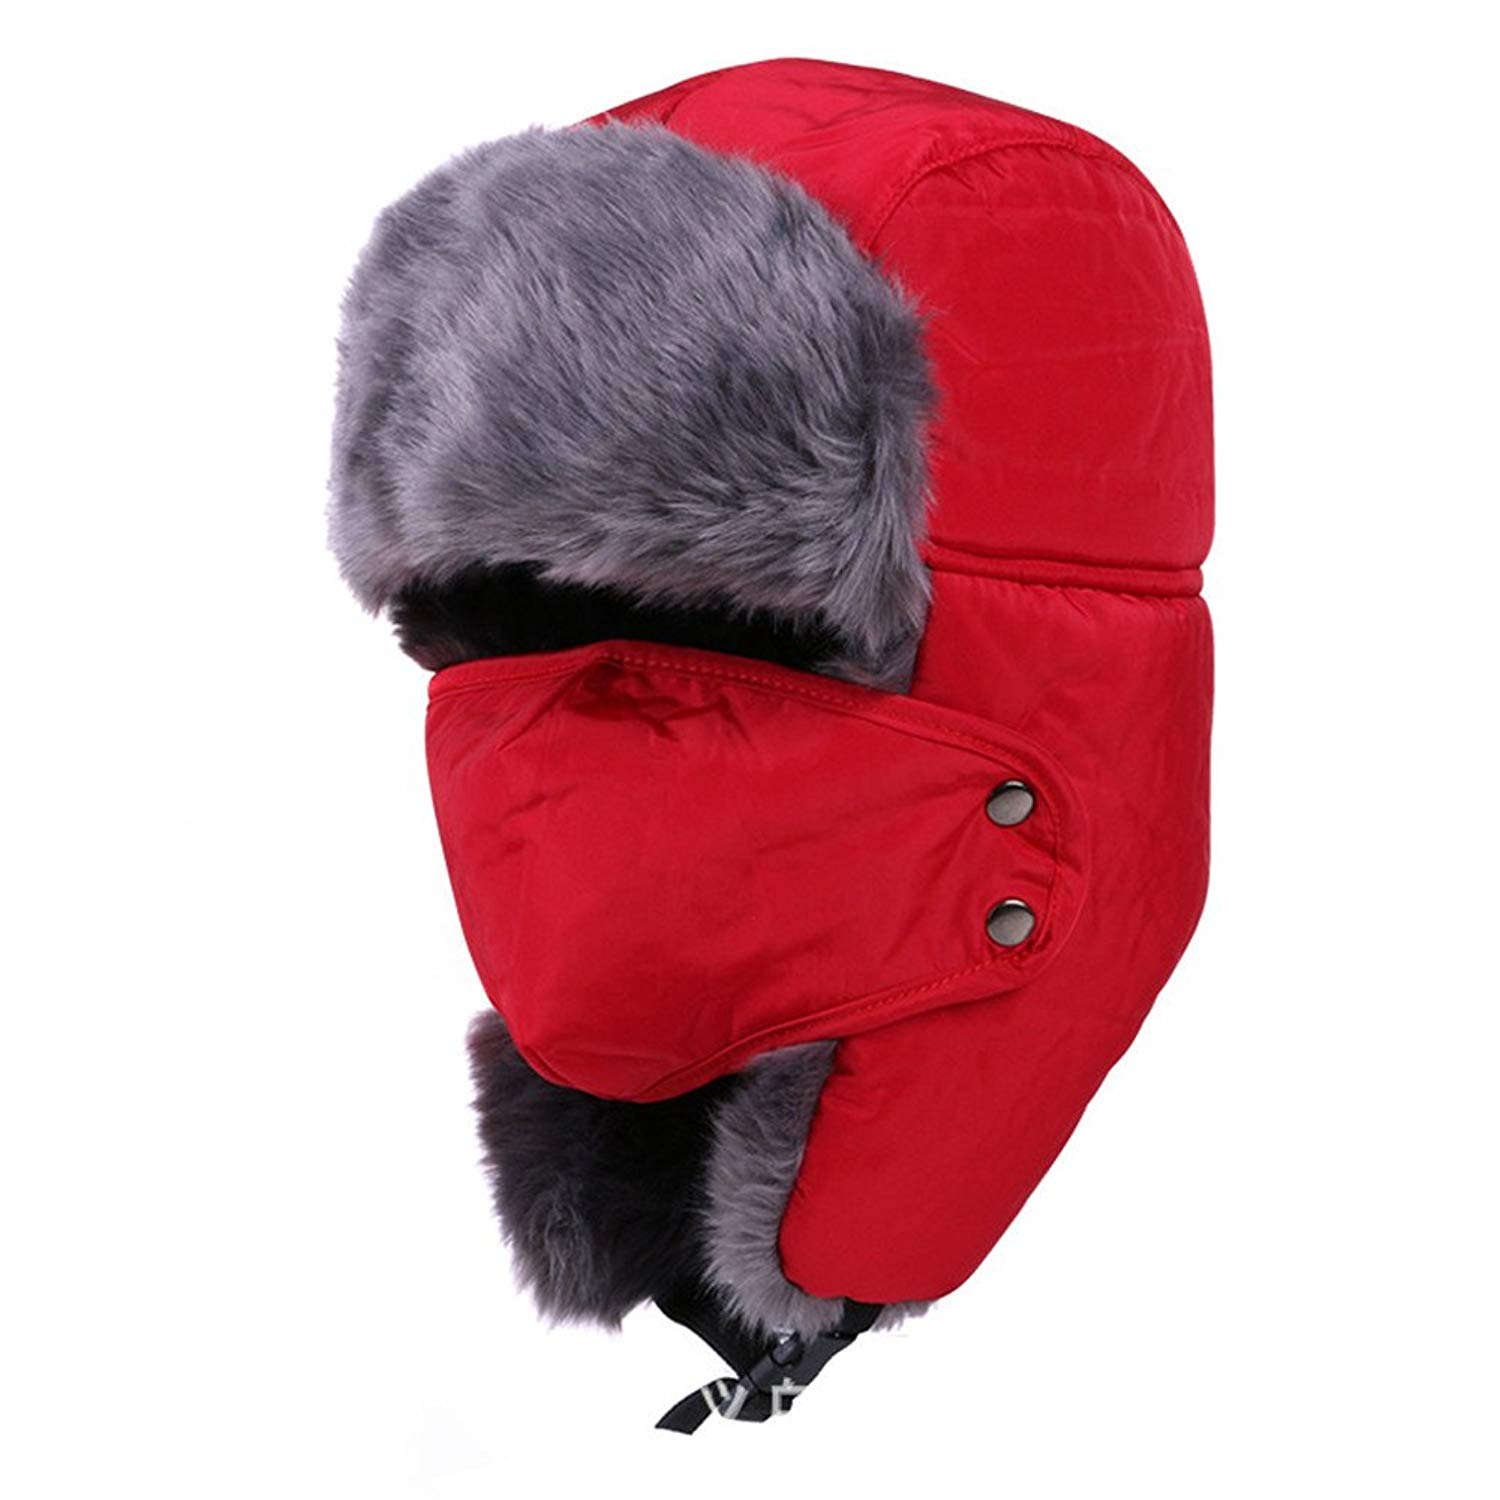 b45605a88d1 Get Quotations · Unisex Winter Trooper Trapper Hats Ushanka Russian Hats Cap  Hunting Ear Flap Chin Strap Hat